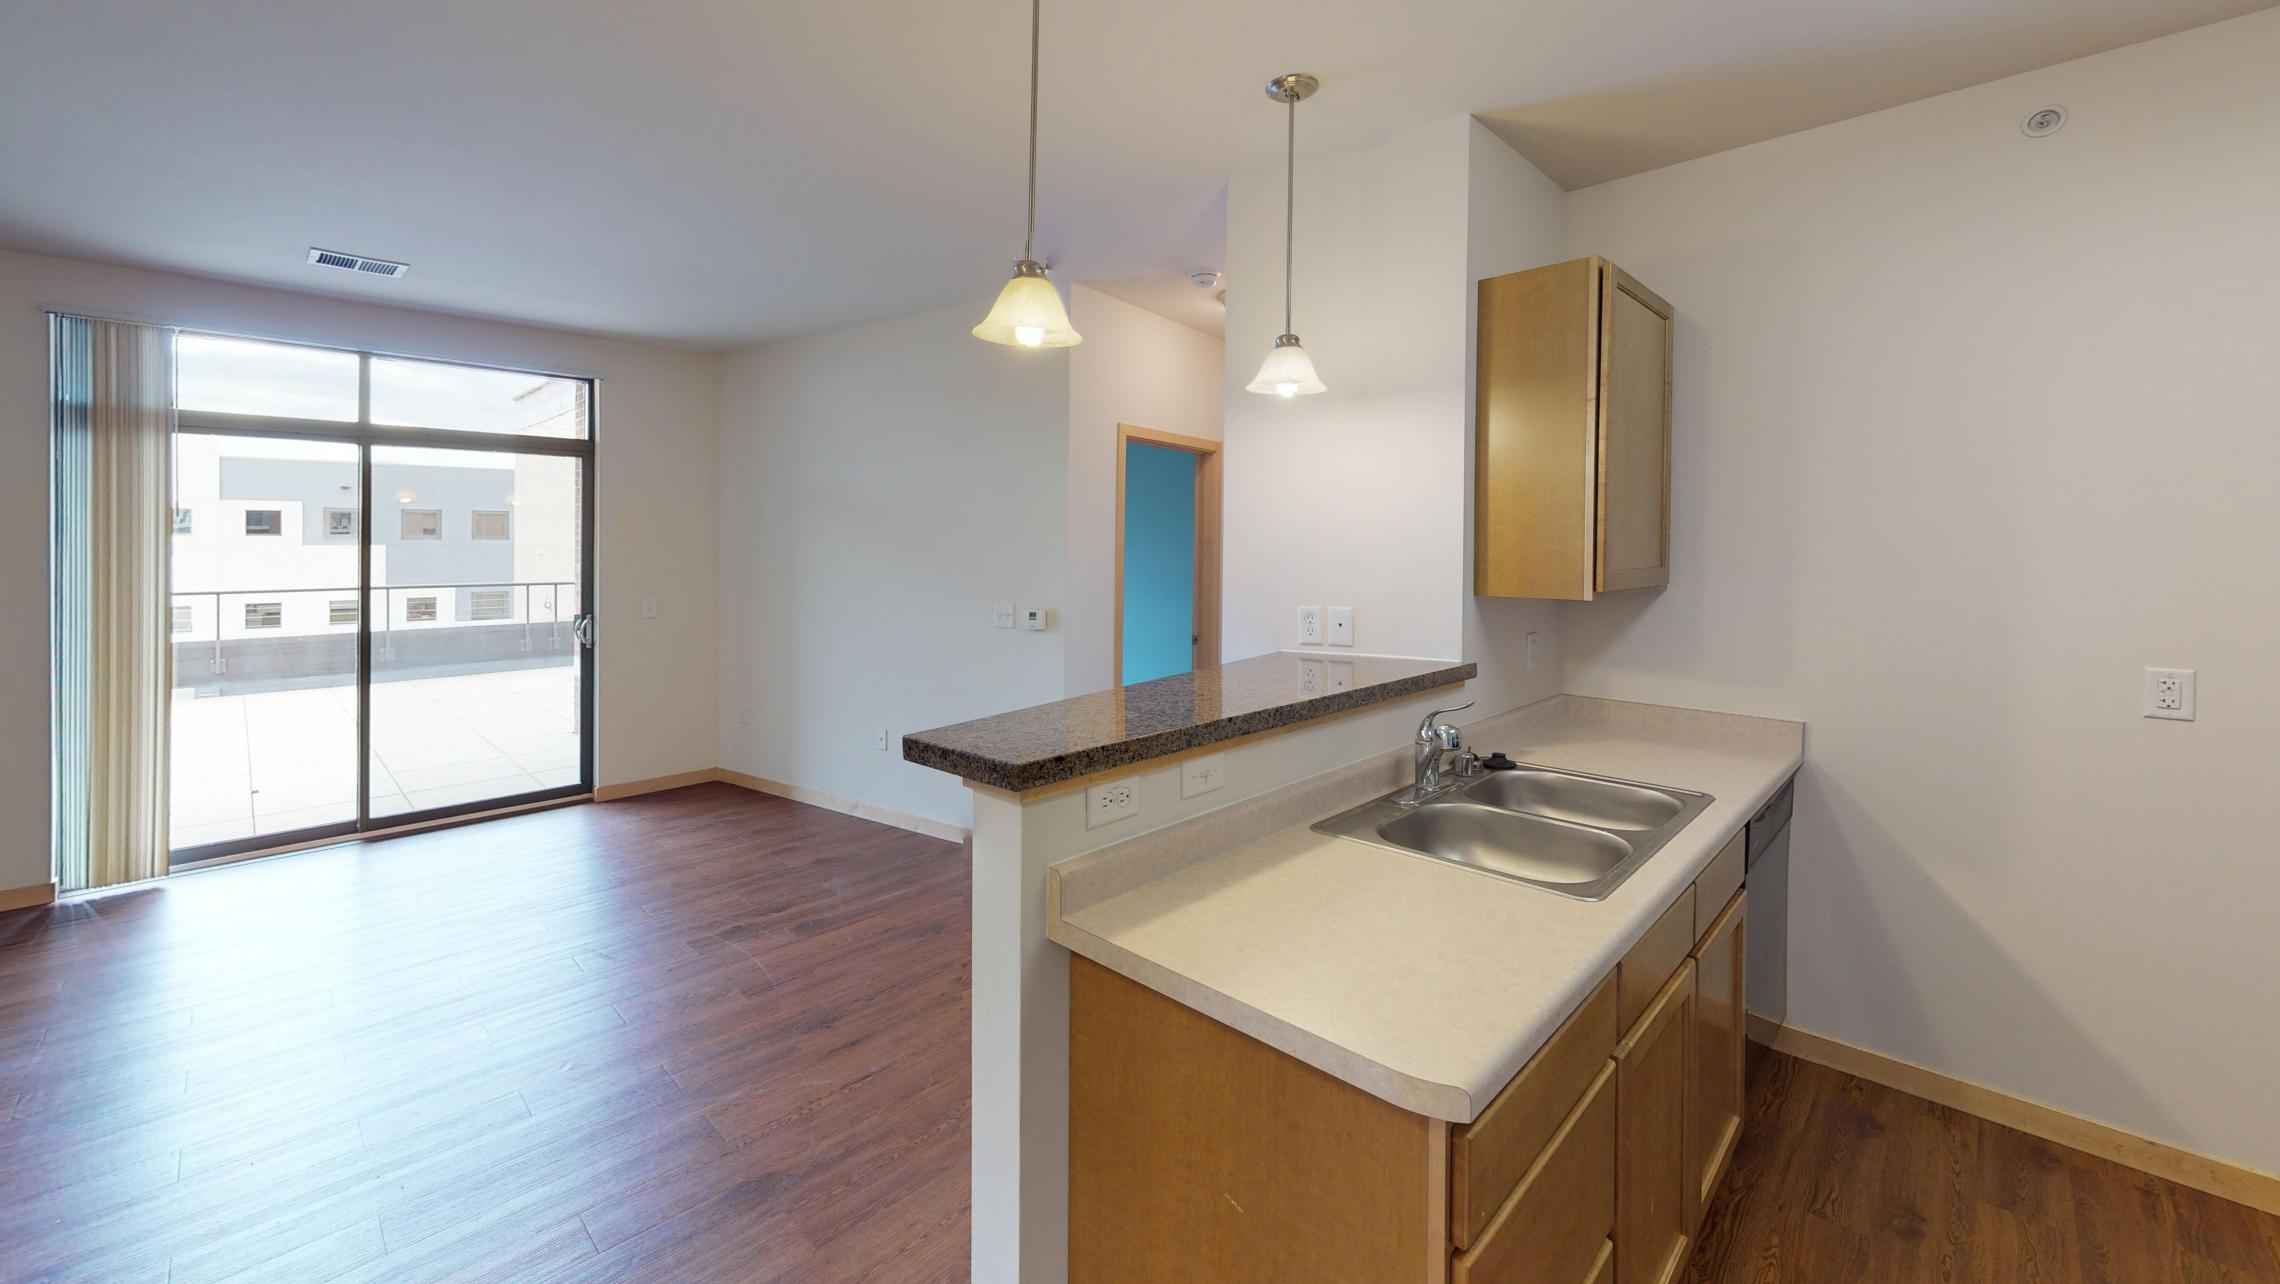 The-Depot-Apartments-Bacolny-Terrace-Fitness-Downtown-Rooftop-Garden-Unique-Capitol-Views-Apartment-1-214-One-Bedroom